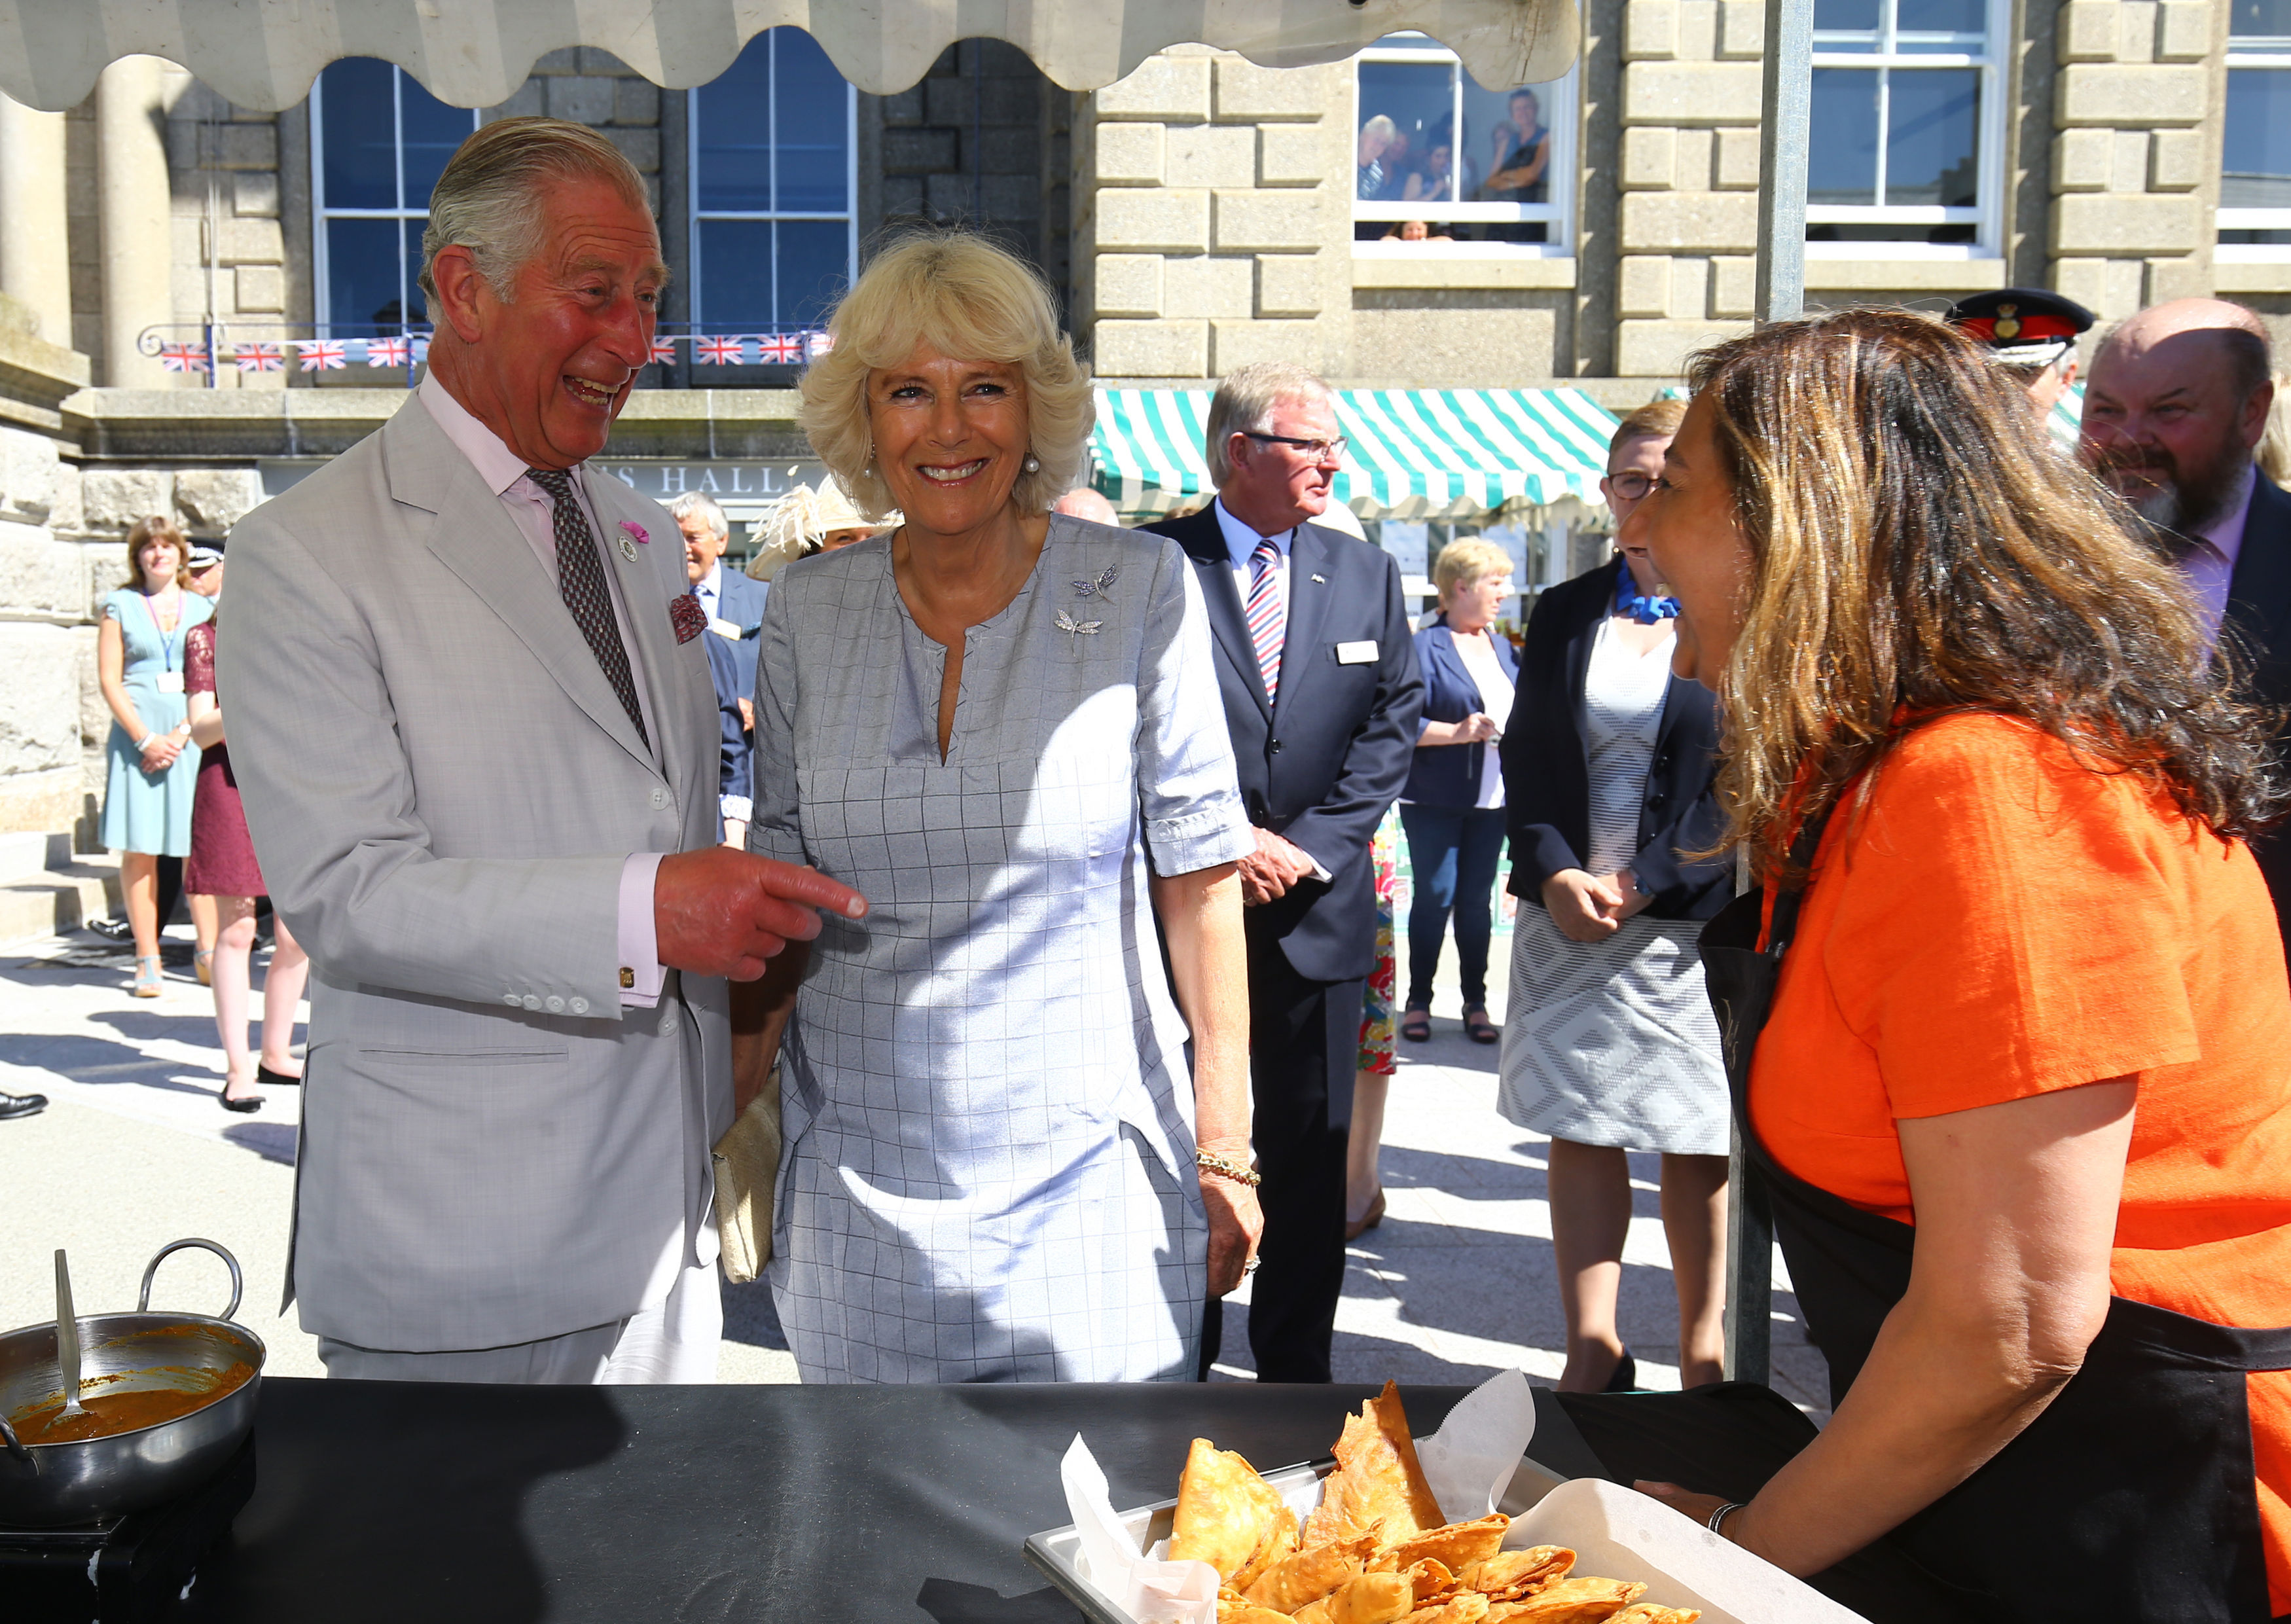 The Prince of Wales and the Duchess of Cornwall during a visit to a farmers' market outside St. John's Hall in Penzance, Cornwall, on the first day of their annual visit to the South West. PRESS ASSOCIATION Photo. Picture date: Monday July 18, 2016. See PA story ROYAL Cornwall. Photo credit should read: Gareth Fuller/PA Wire